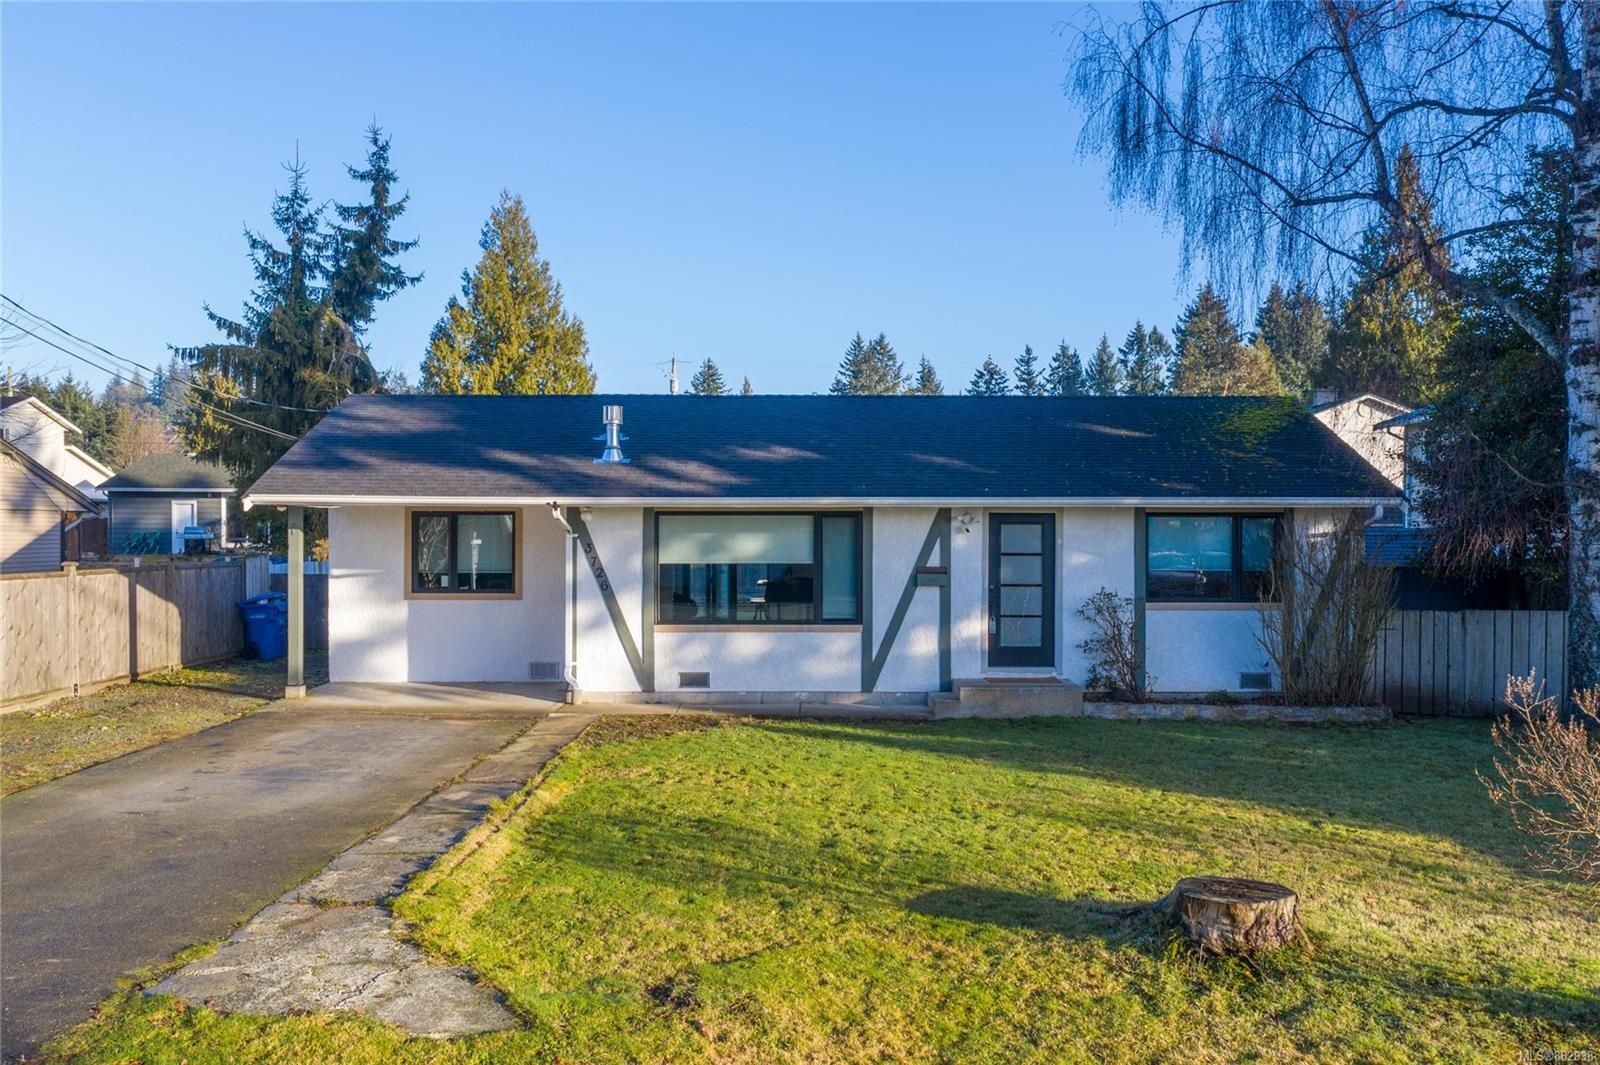 Main Photo: 3726 Victoria Ave in : Na Uplands House for sale (Nanaimo)  : MLS®# 862938